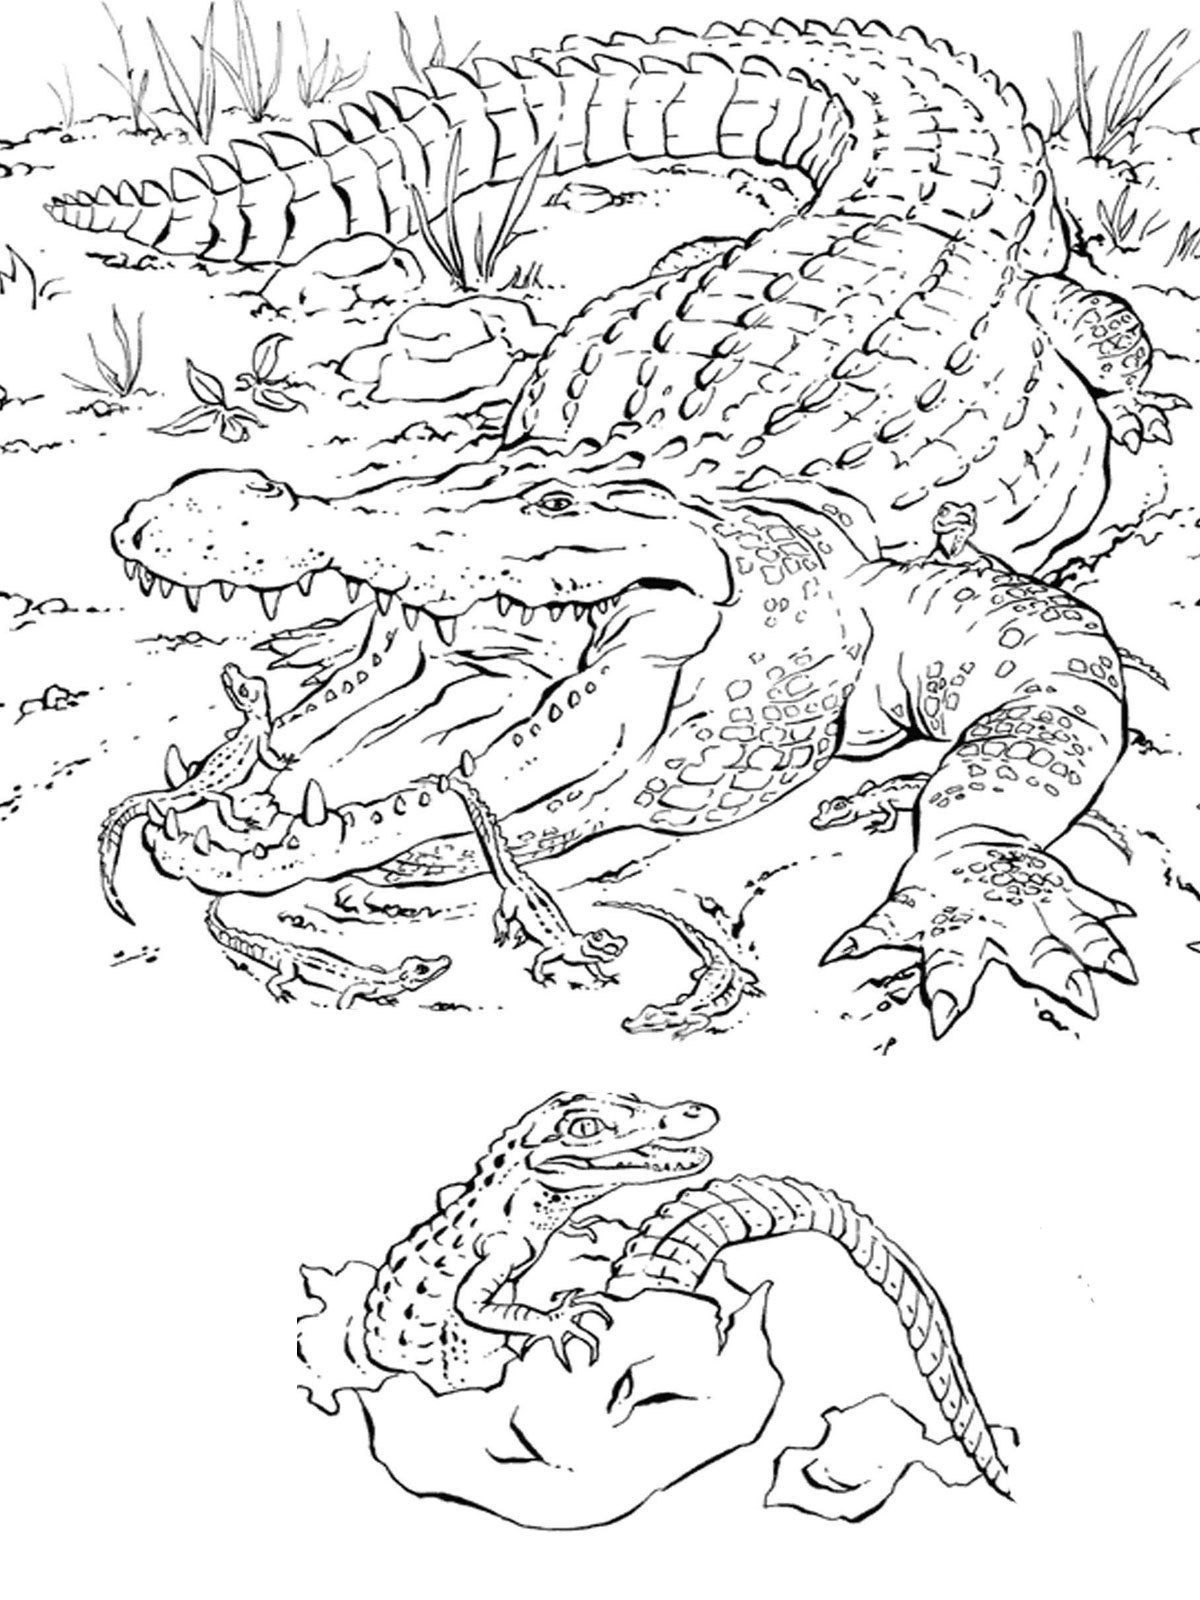 Realistic Animal Coloring Pages Advanced Coloring Pages Difficult - Free Printable Realistic Animal Coloring Pages